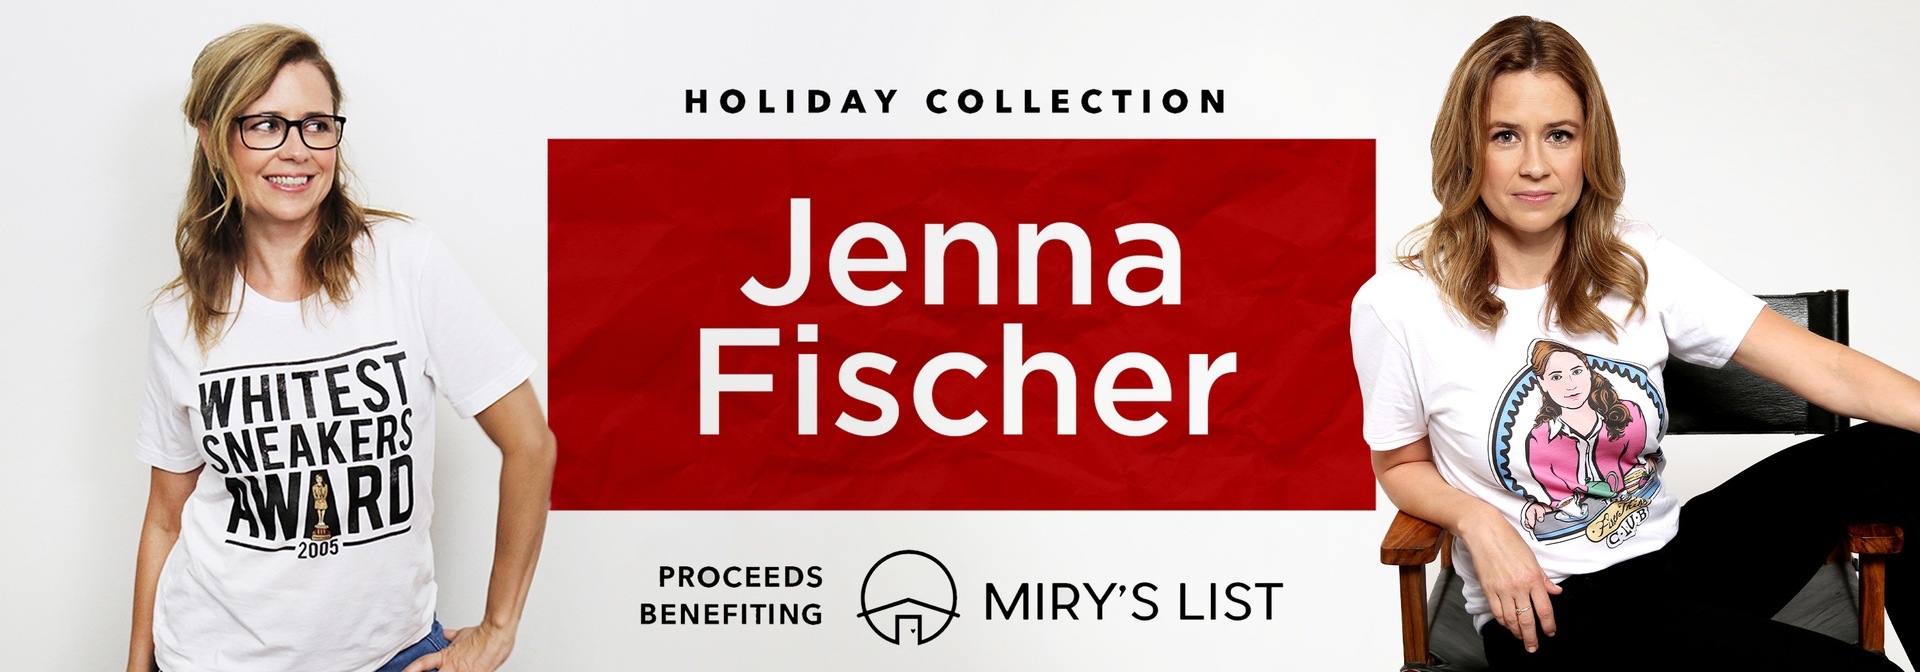 Jenna Fischer's Holiday Store